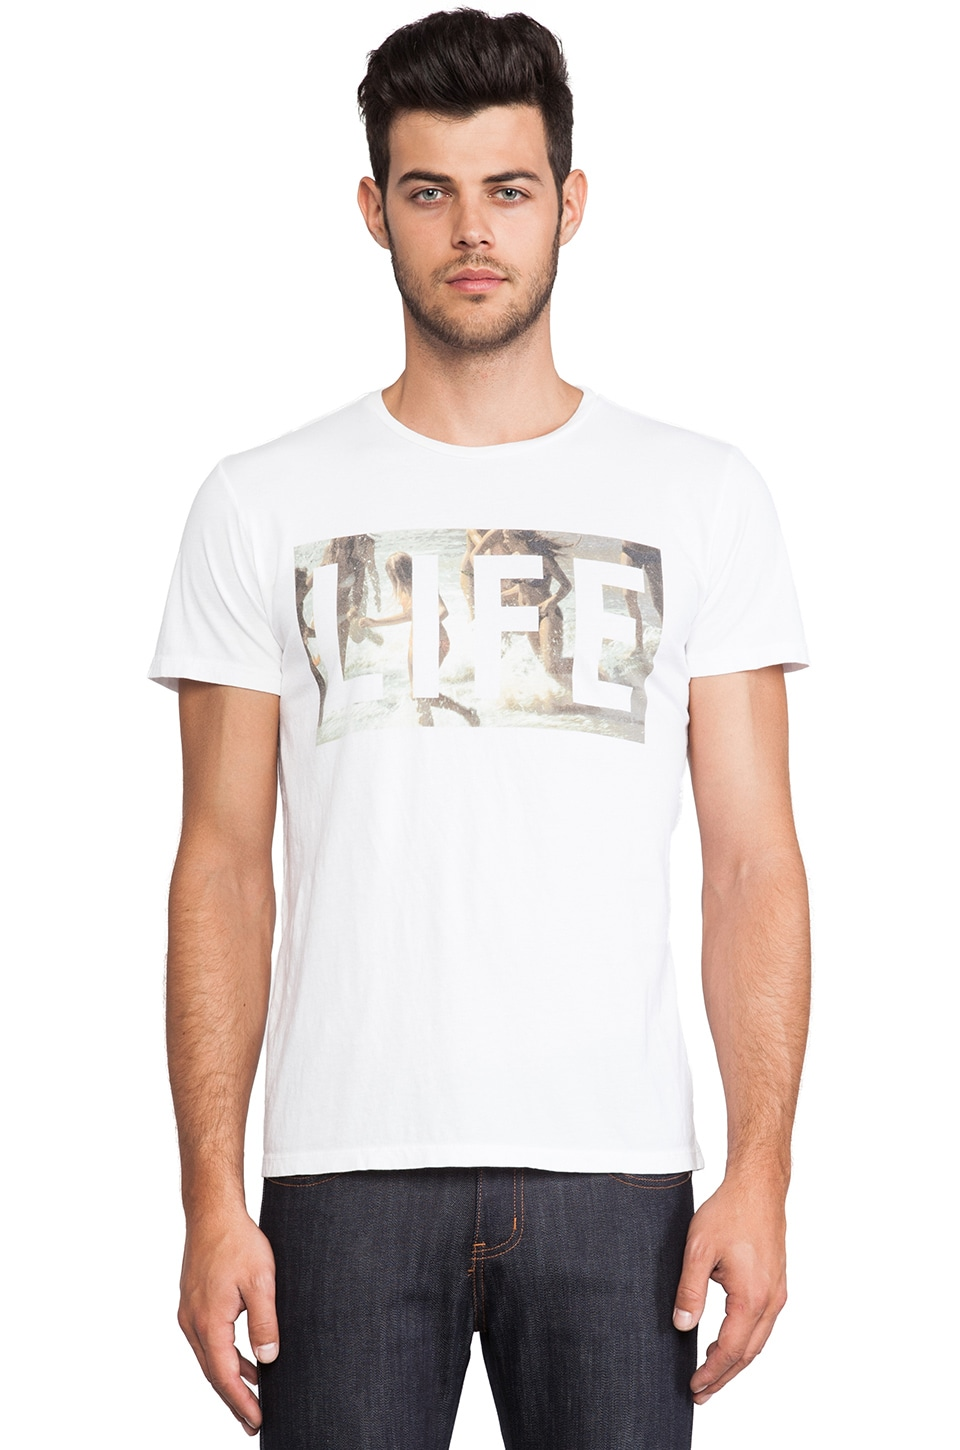 Altru LIFE Beach Girls Tee in White